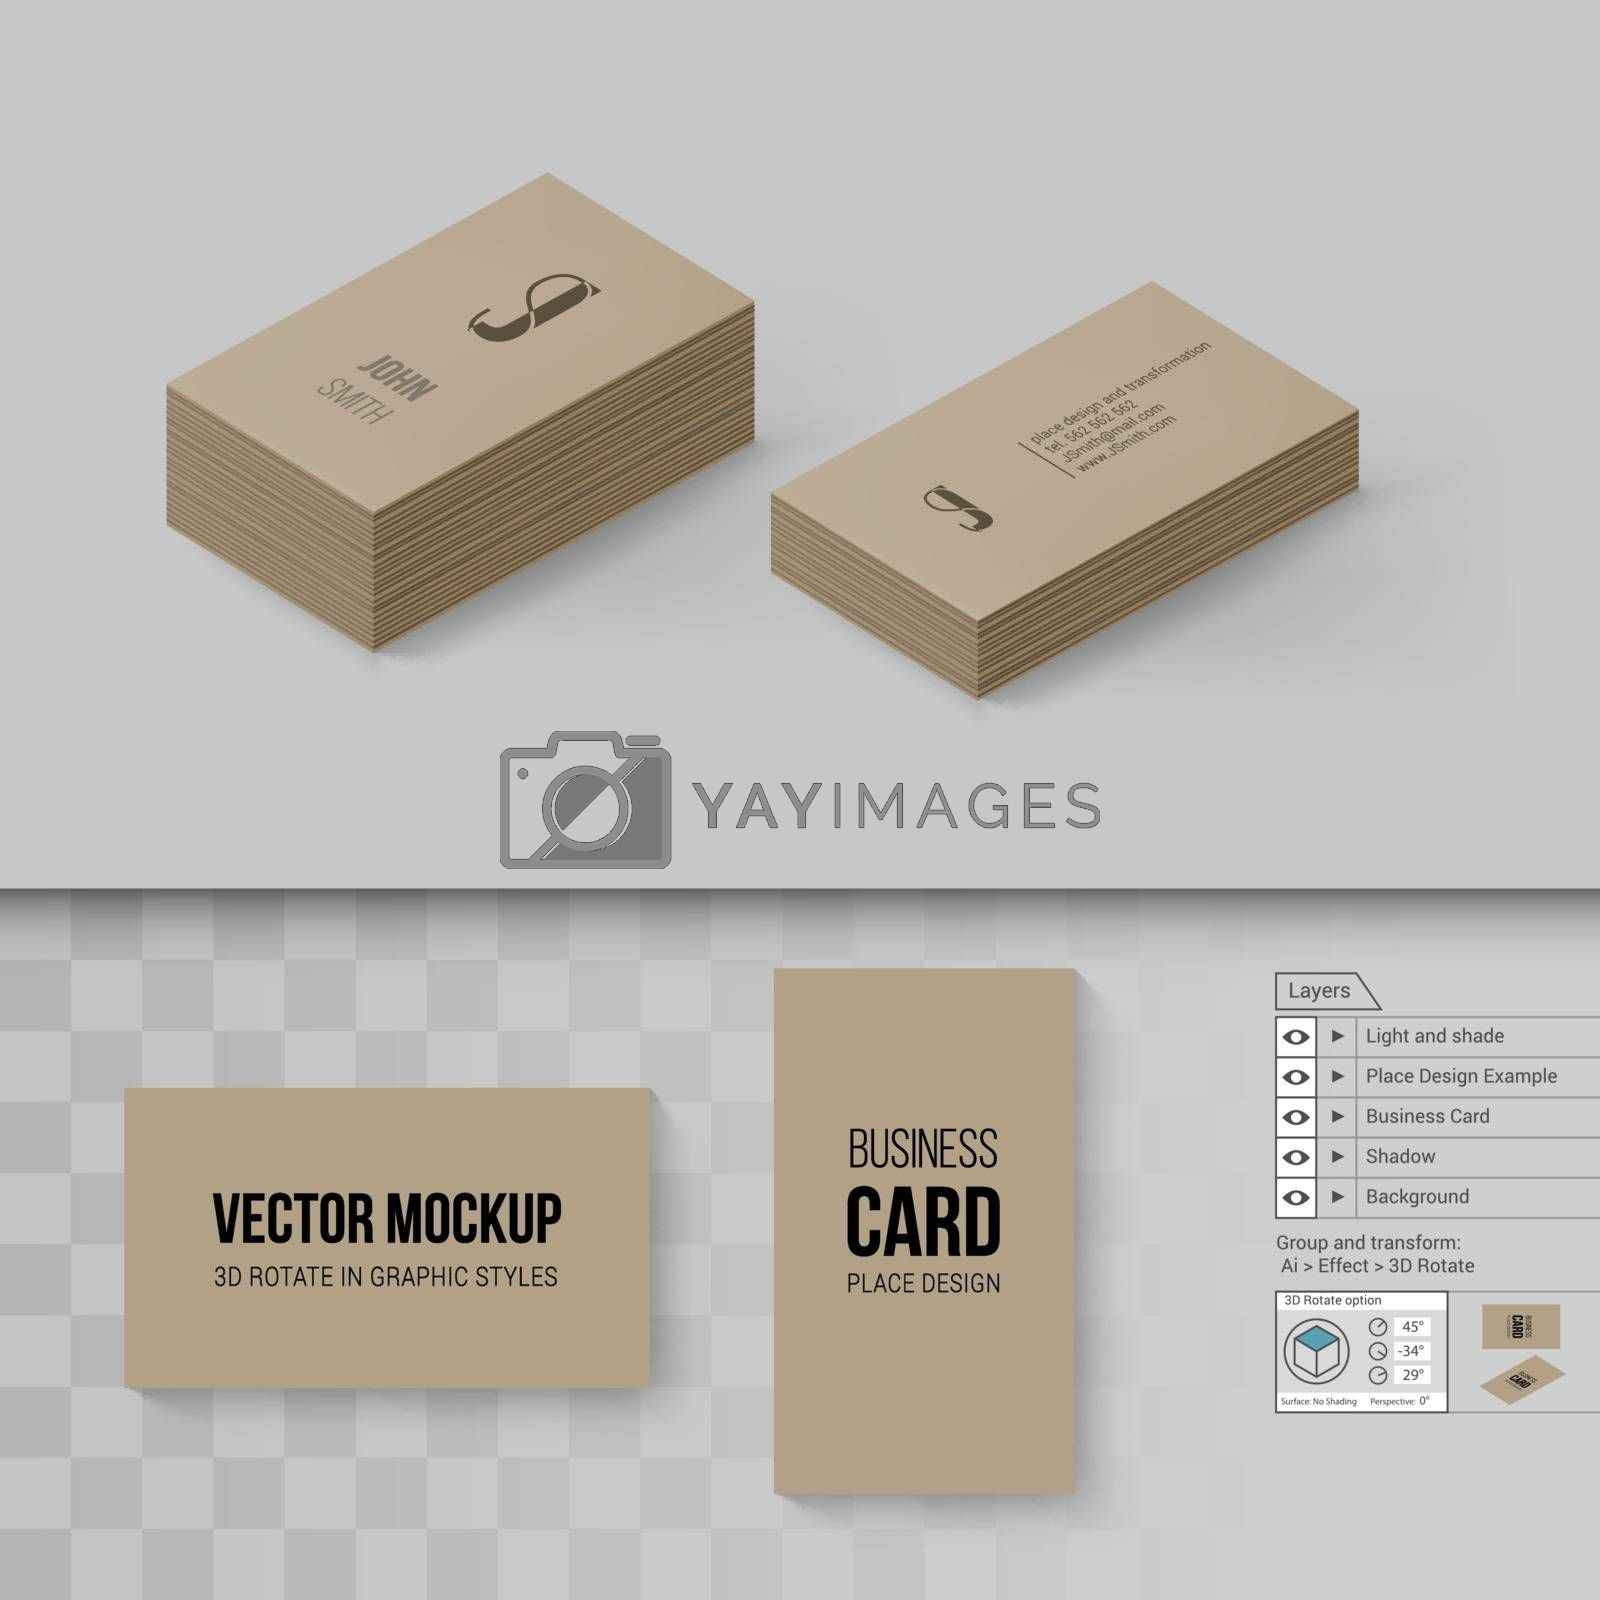 Brown Business Cards Template. Branding Mock Up with 3D Rotate Options on Gray and Transparent Background